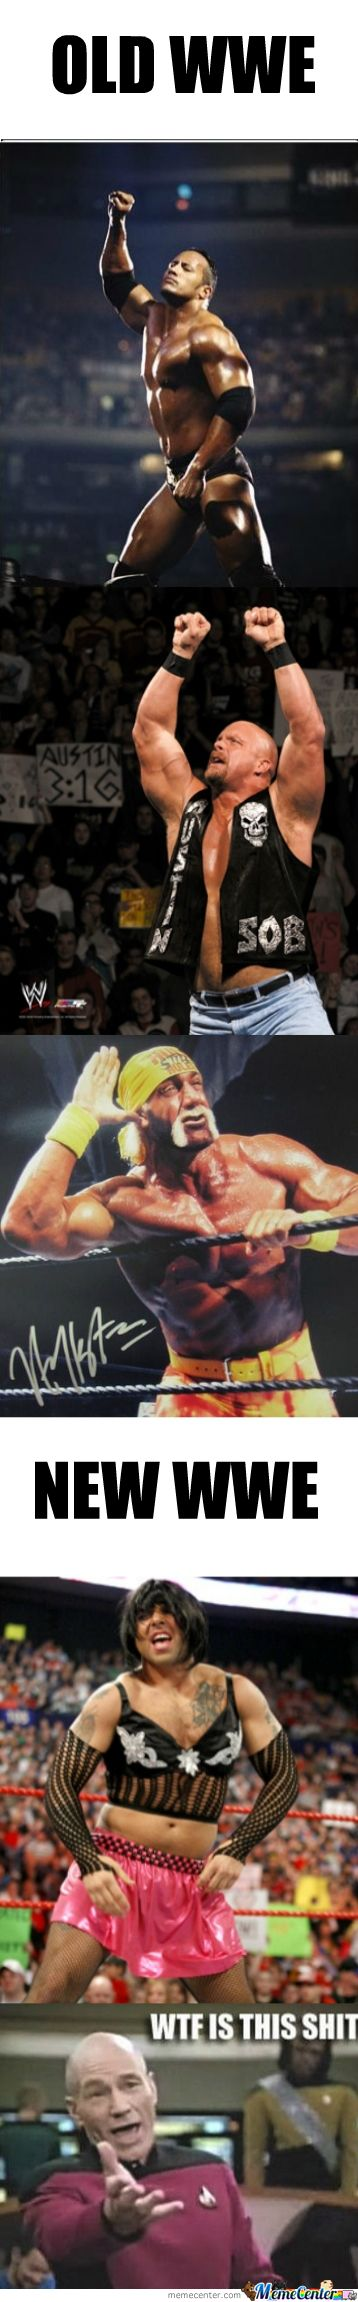 I miss the attitude era ;[.  Stone cold was the best!